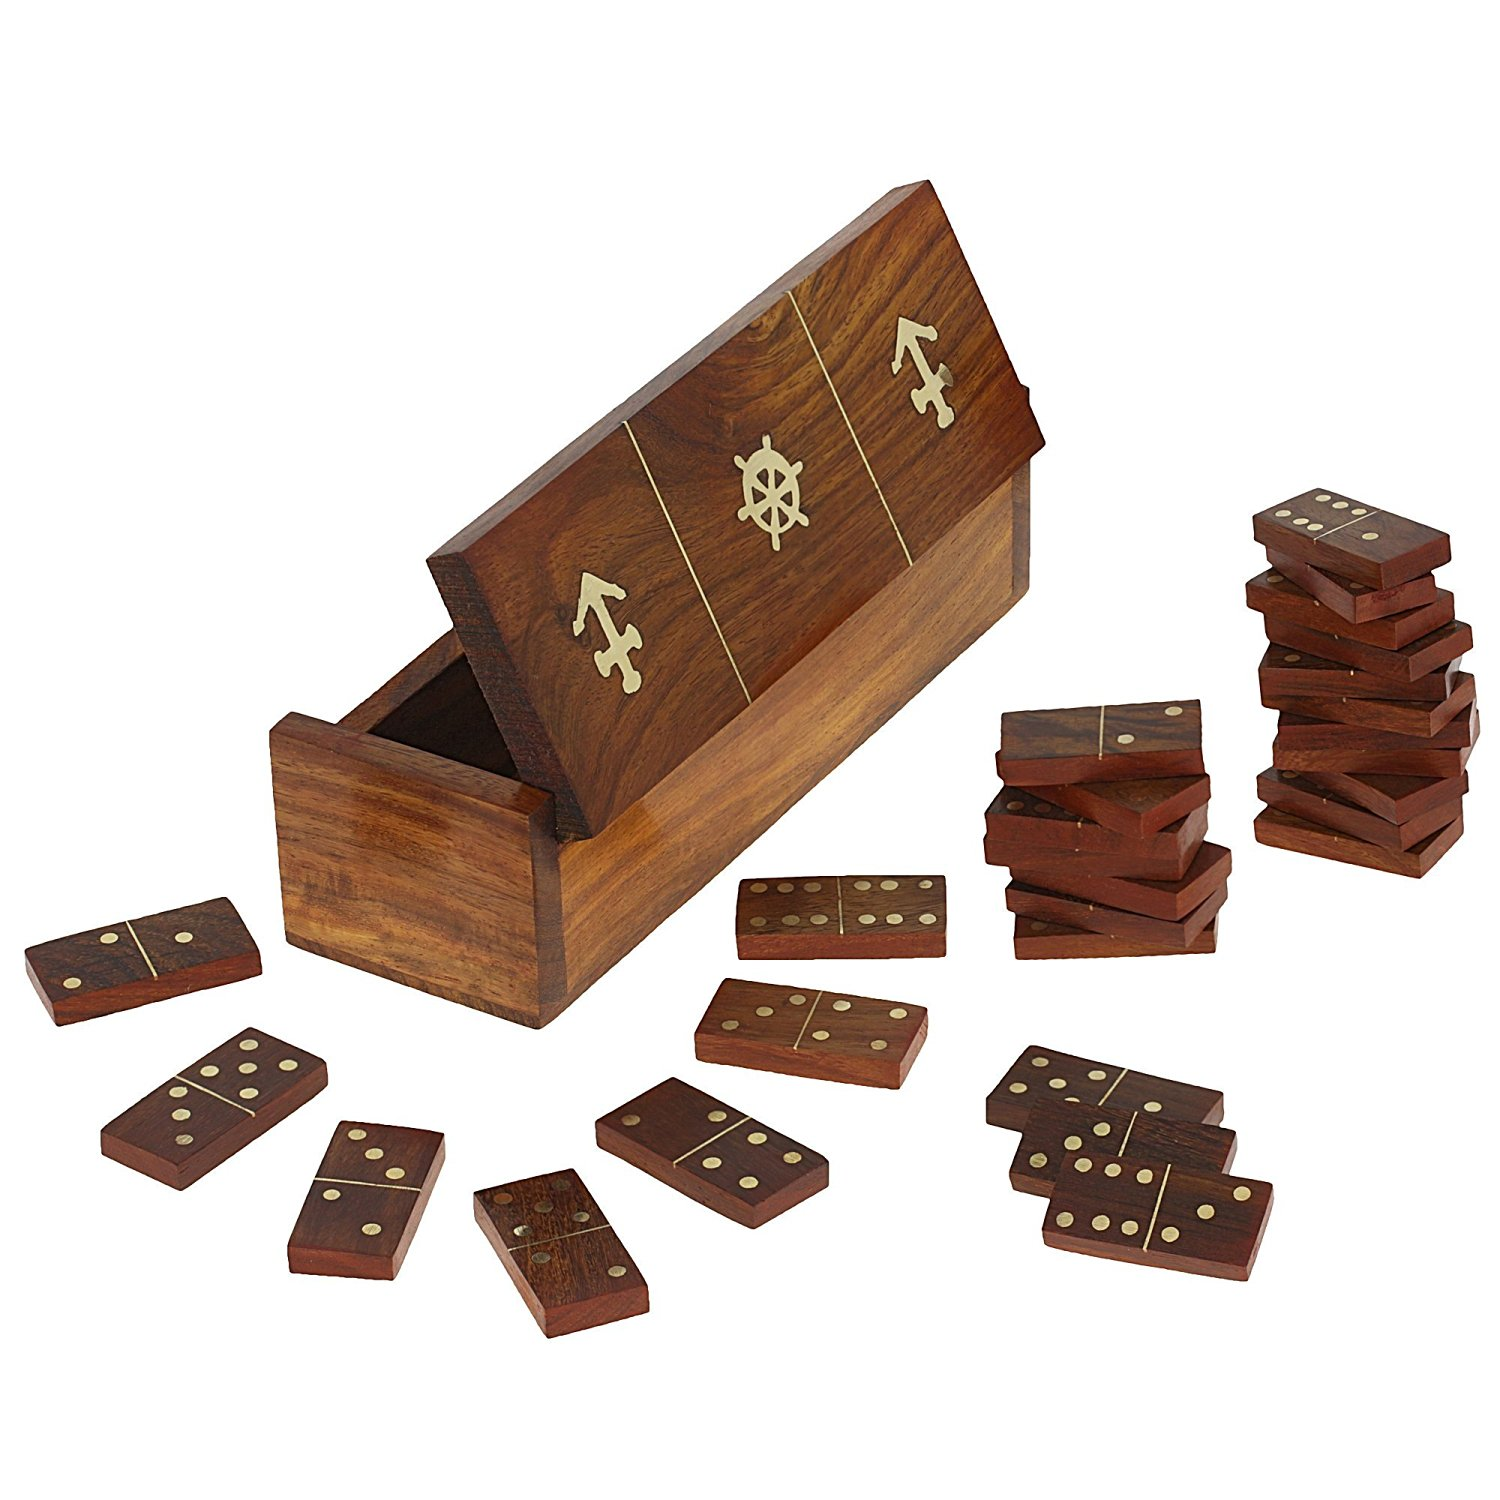 SET OF 6 - Handmade Wooden Domino Game with Nautical Storage Box - Complete Game Set